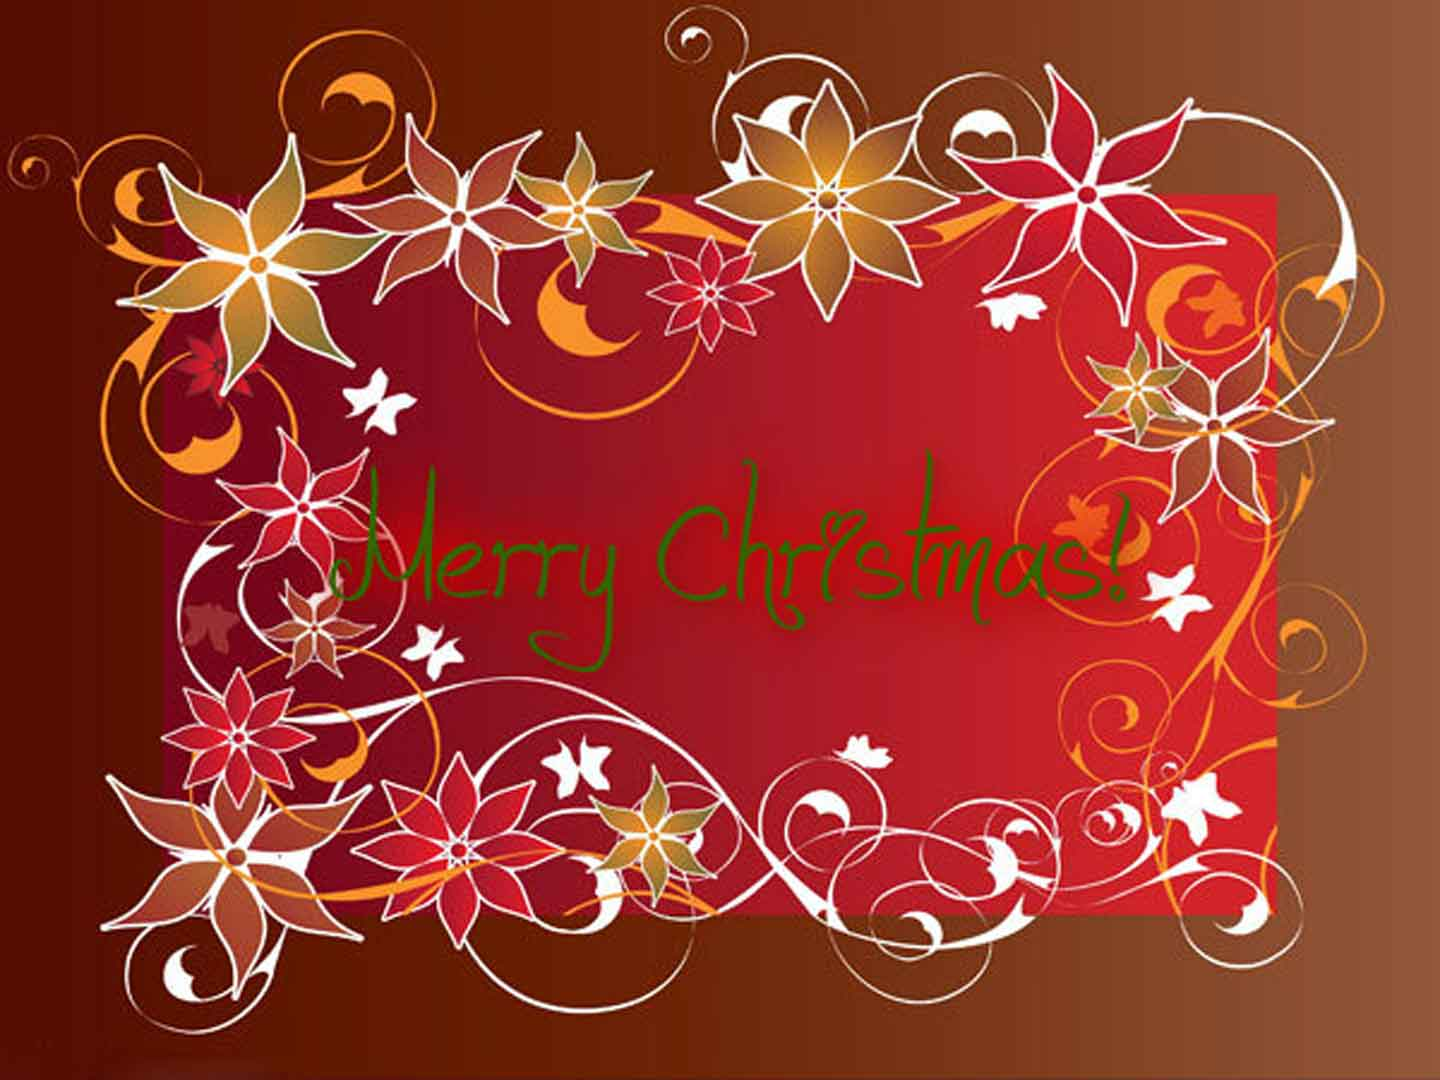 Christmas Cards 2012: Merry Christmas Greeting Cards Free Download